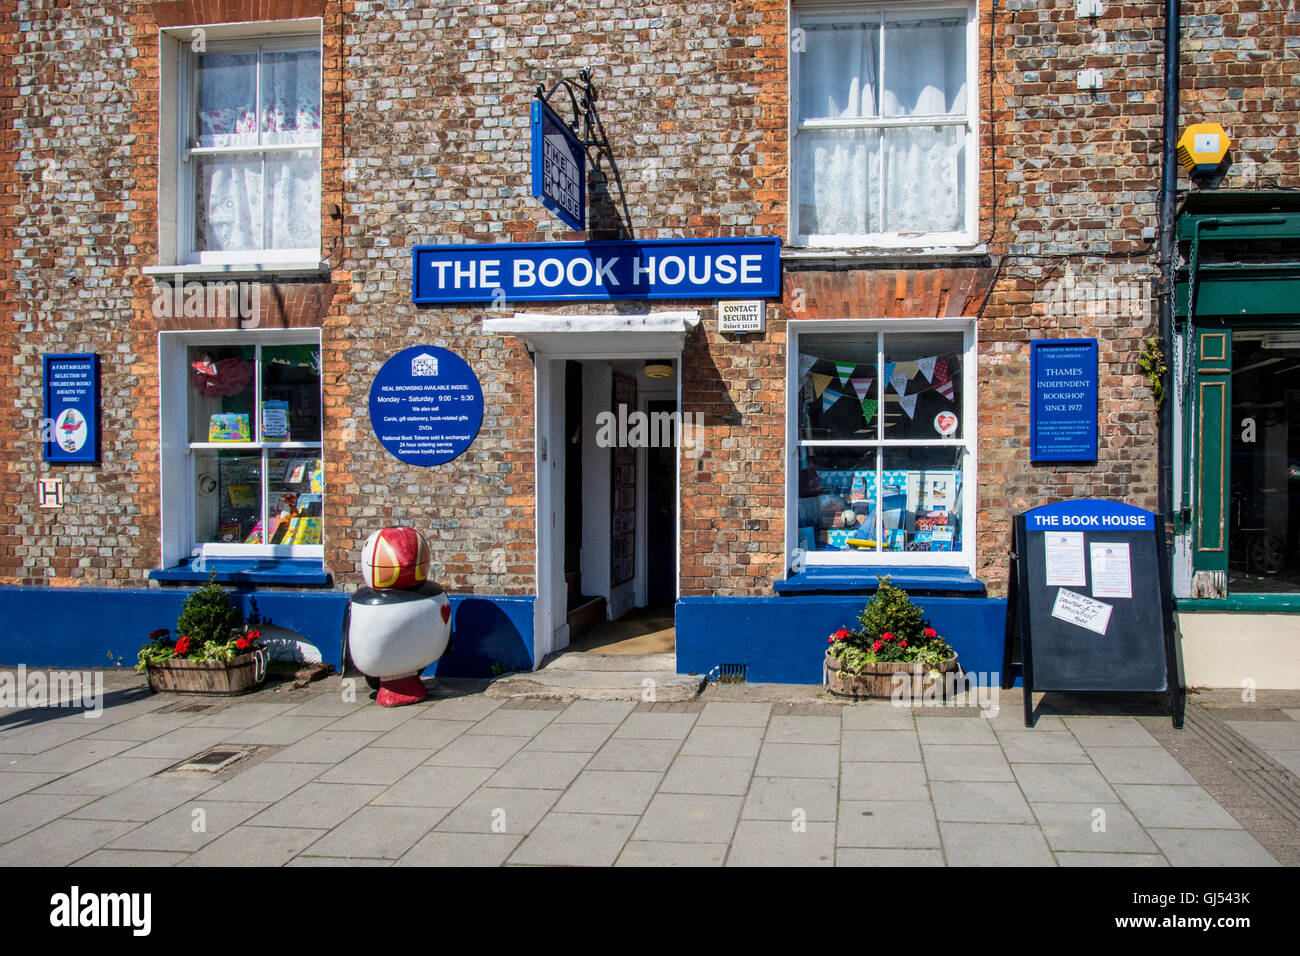 Book shop in town of Thame Oxfordshire England - Stock Image